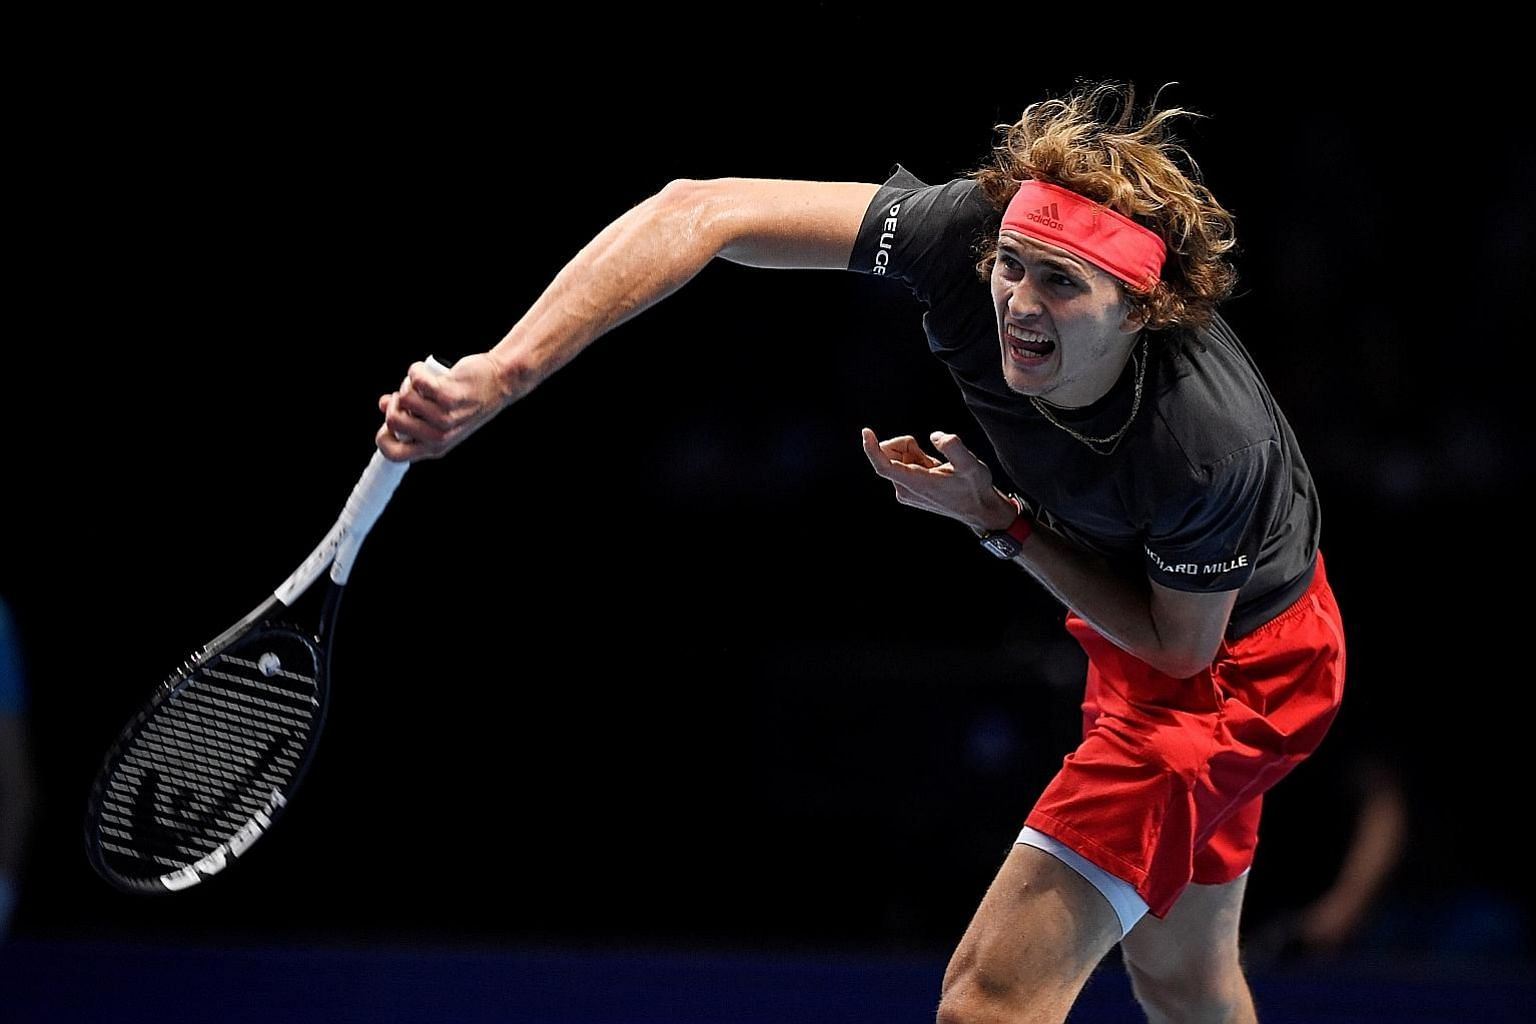 Alexander Zverev served notice of his talent by winning the ATP Finals, beating Roger Federer and Novak Djokovic along the way.